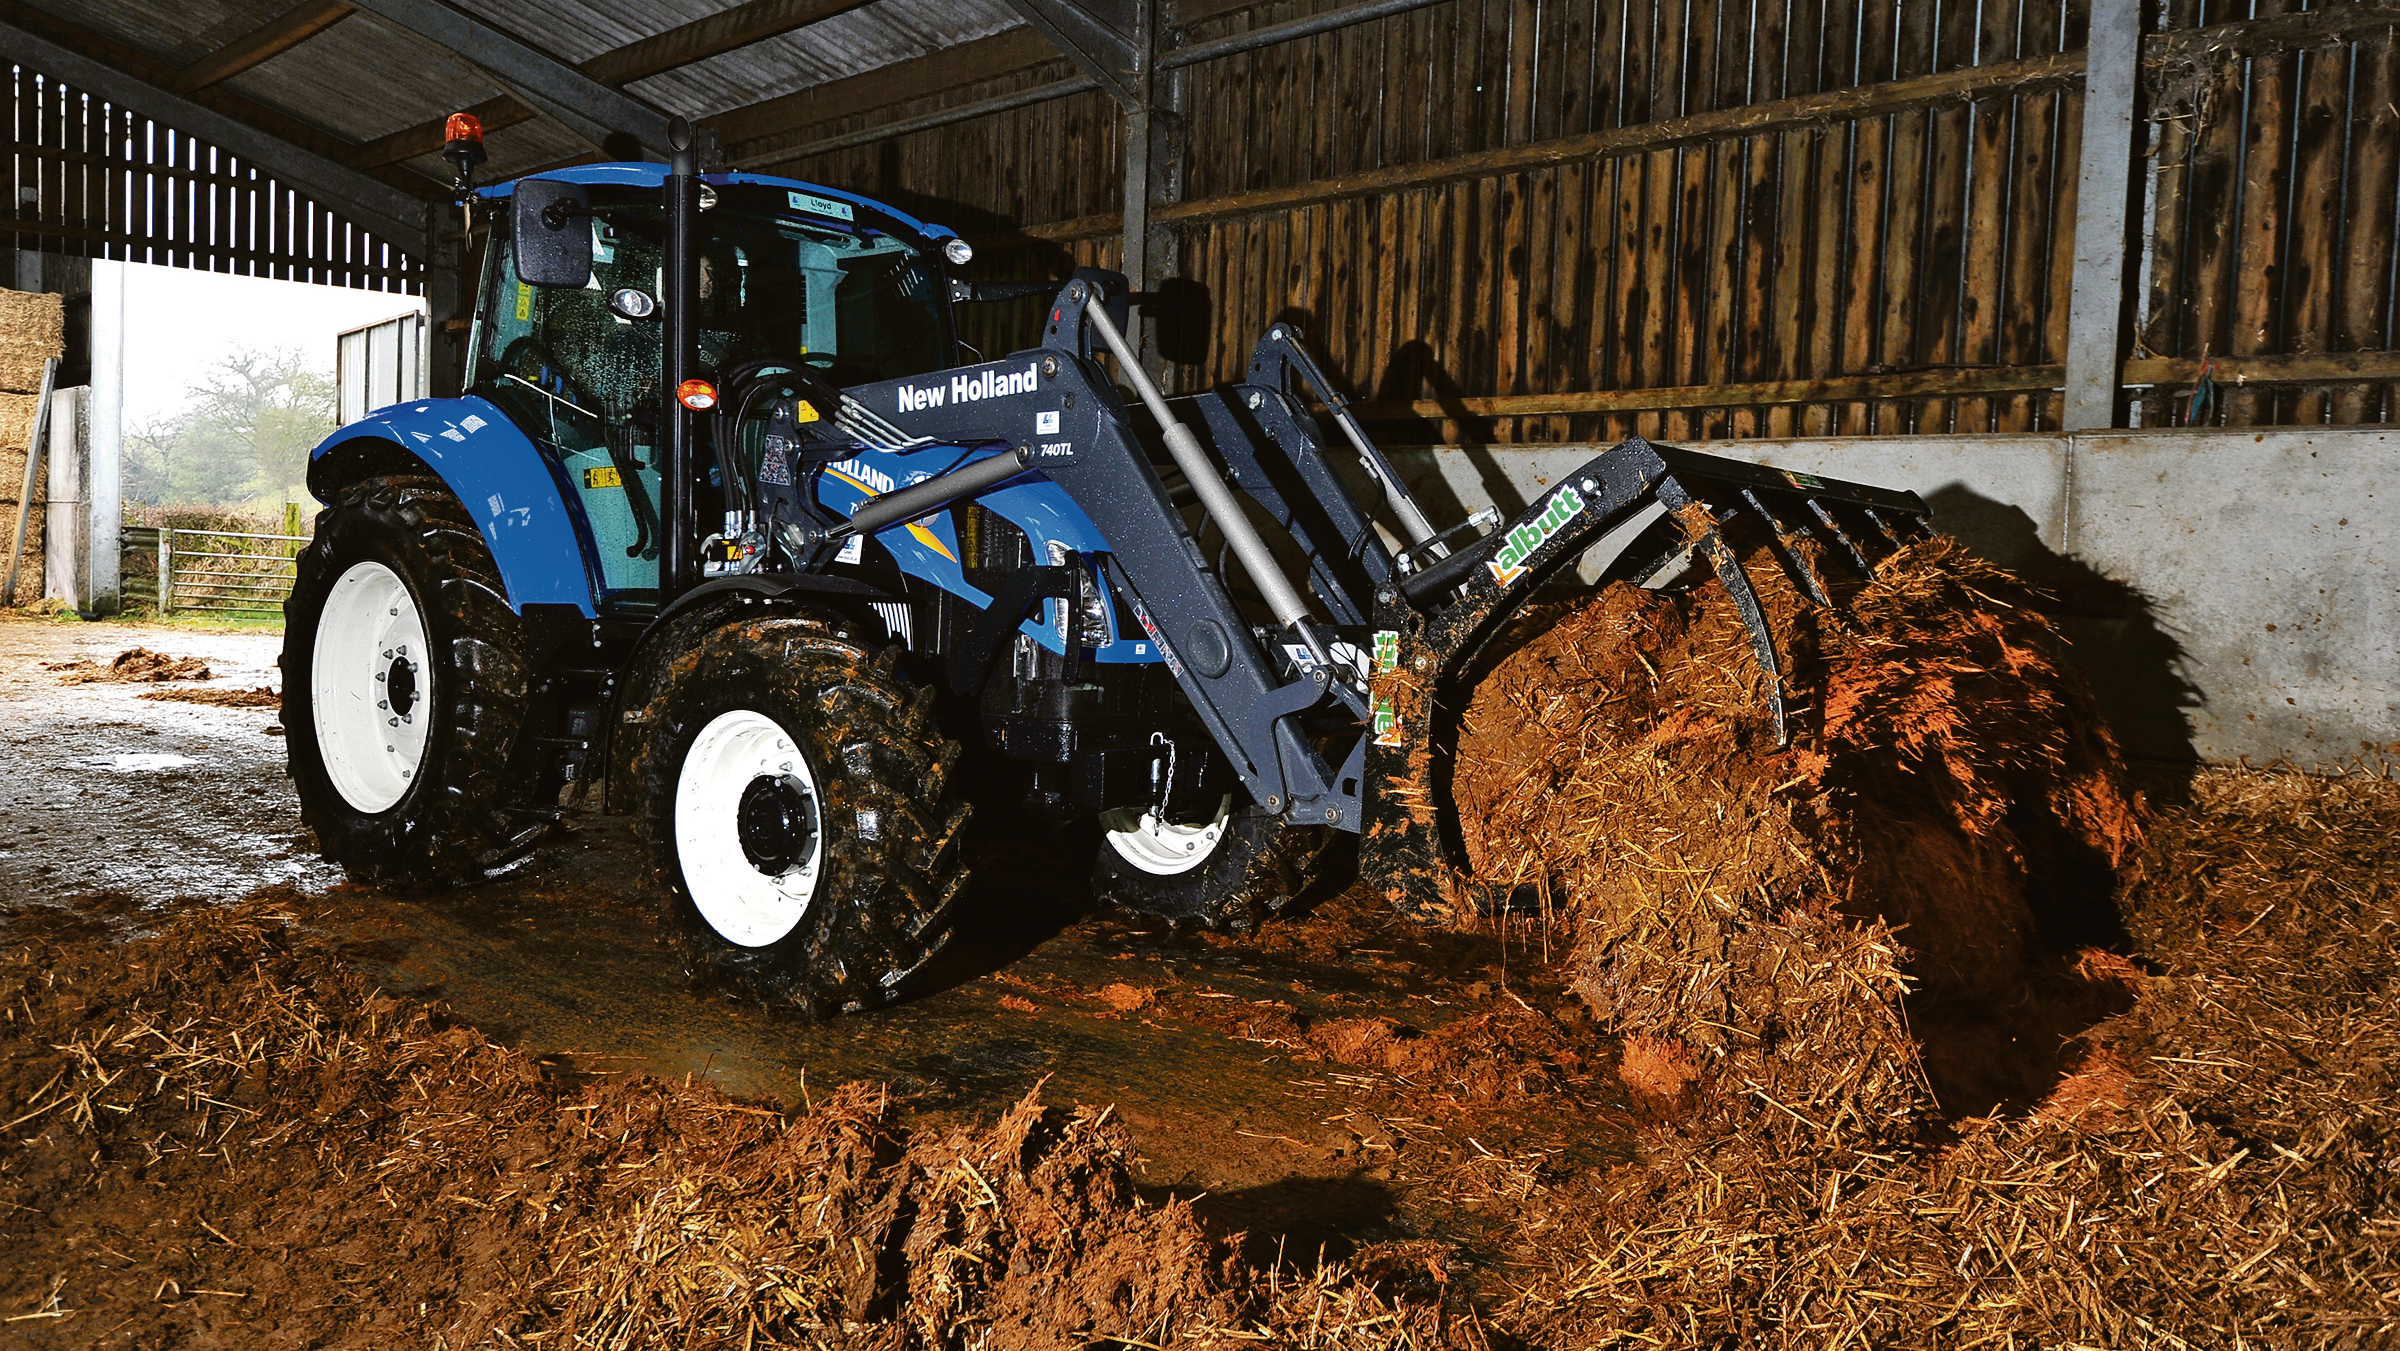 On test: New Holland T5.105